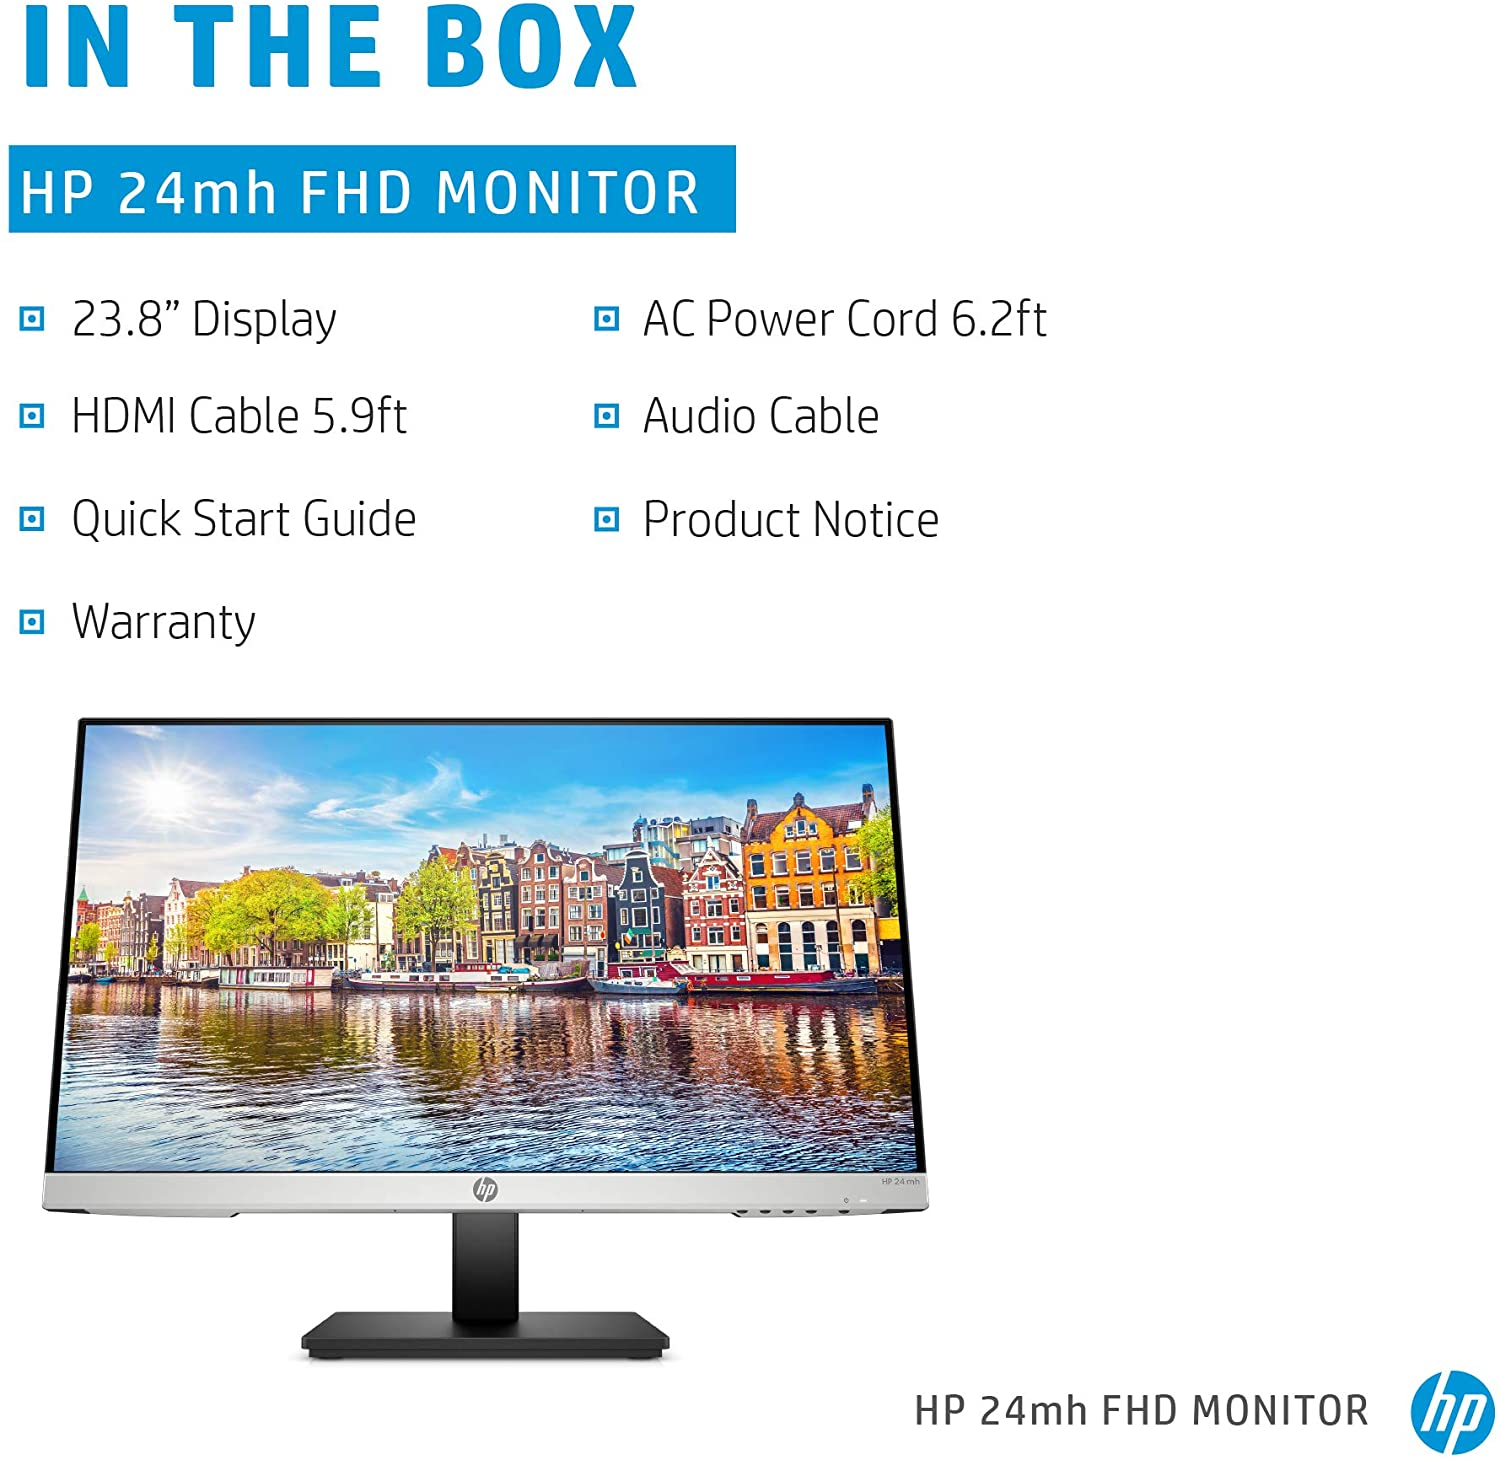 HP 24mh FHD Monitor - Computer Monitor with 23.8-Inch IPS Display (1080p) - Built-In Speakers and VESA Mounting